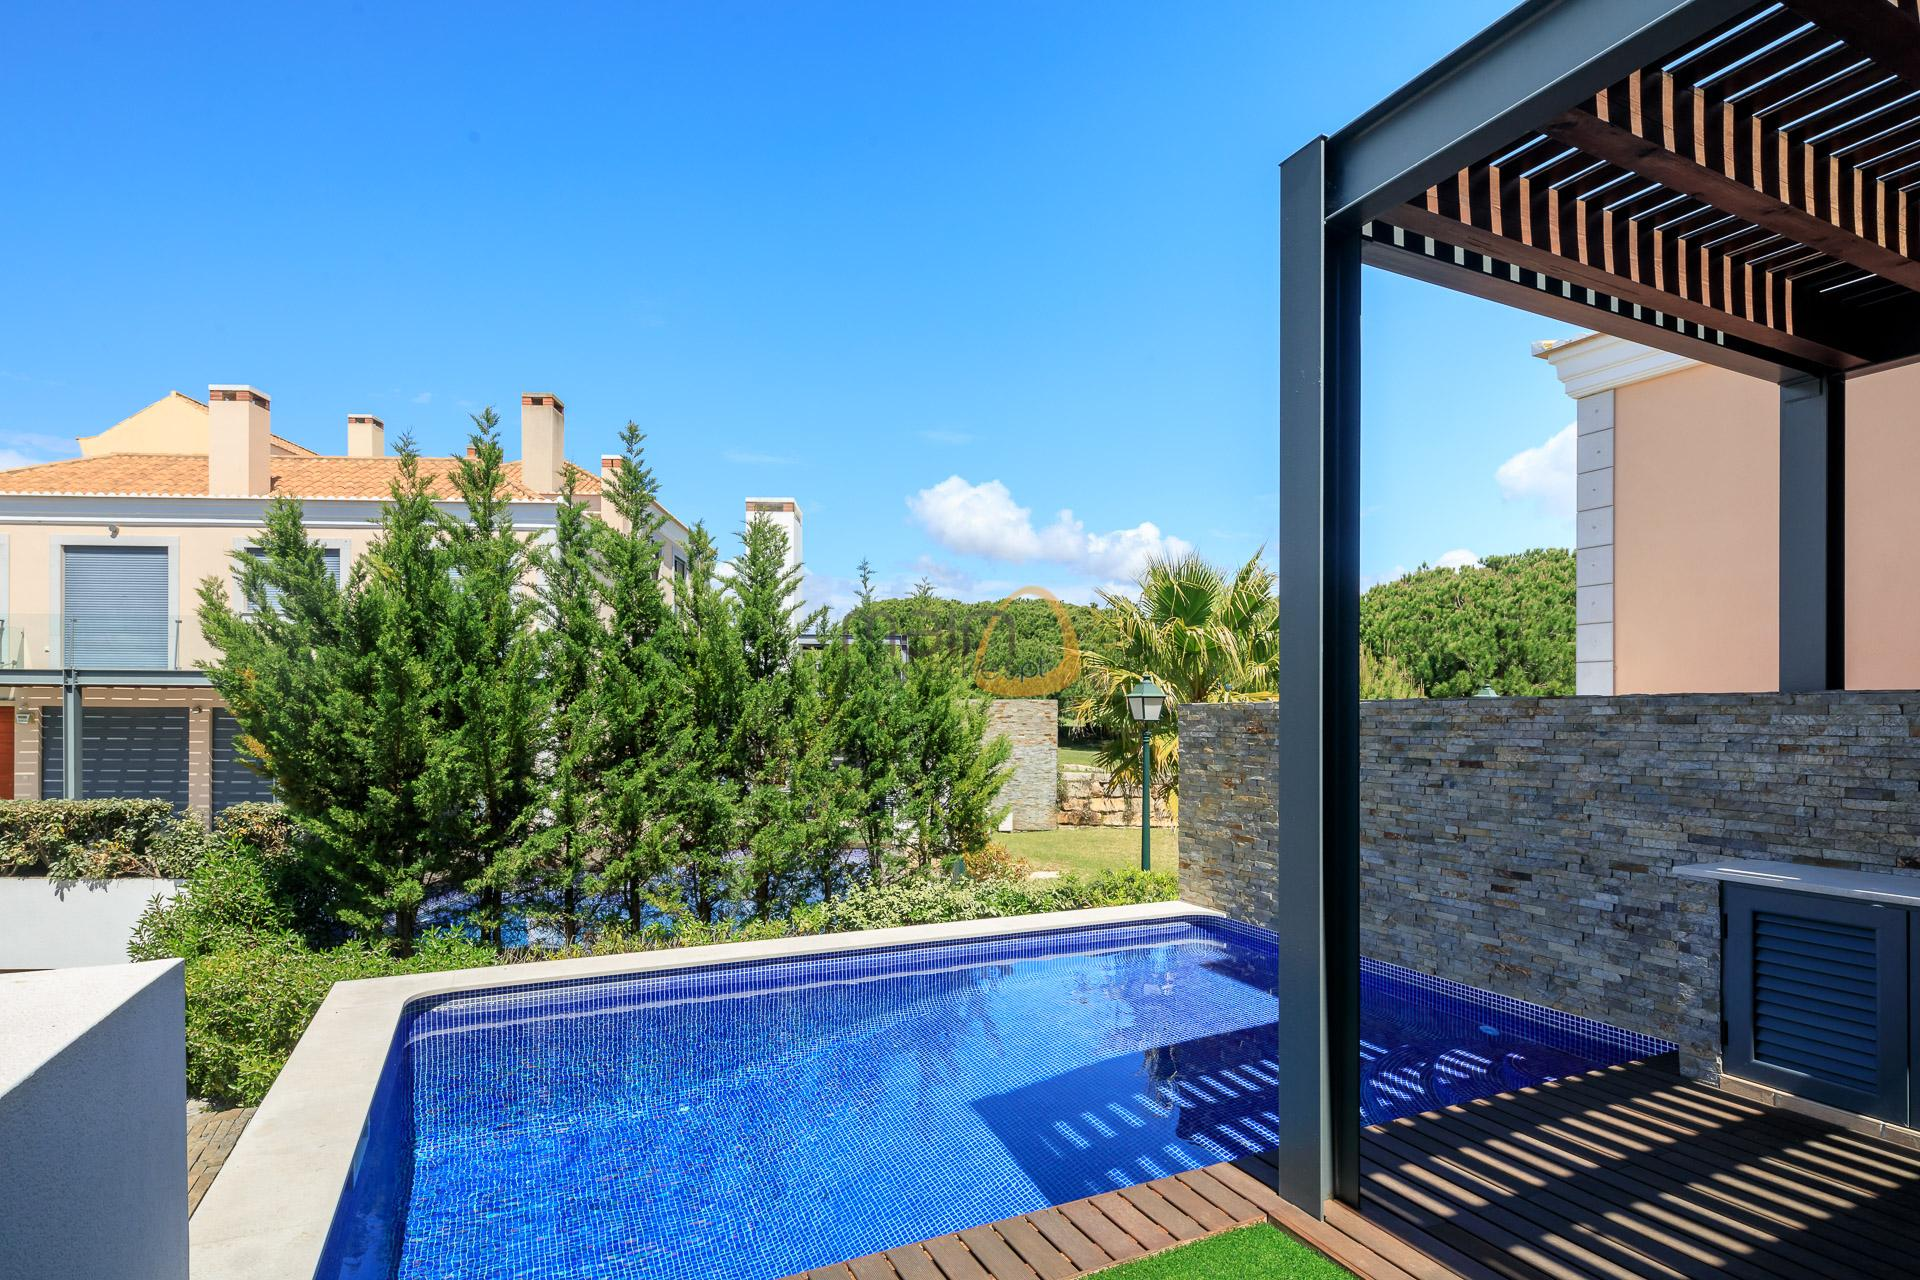 (English) 2 bedroom modern villa in Vale do Lobo